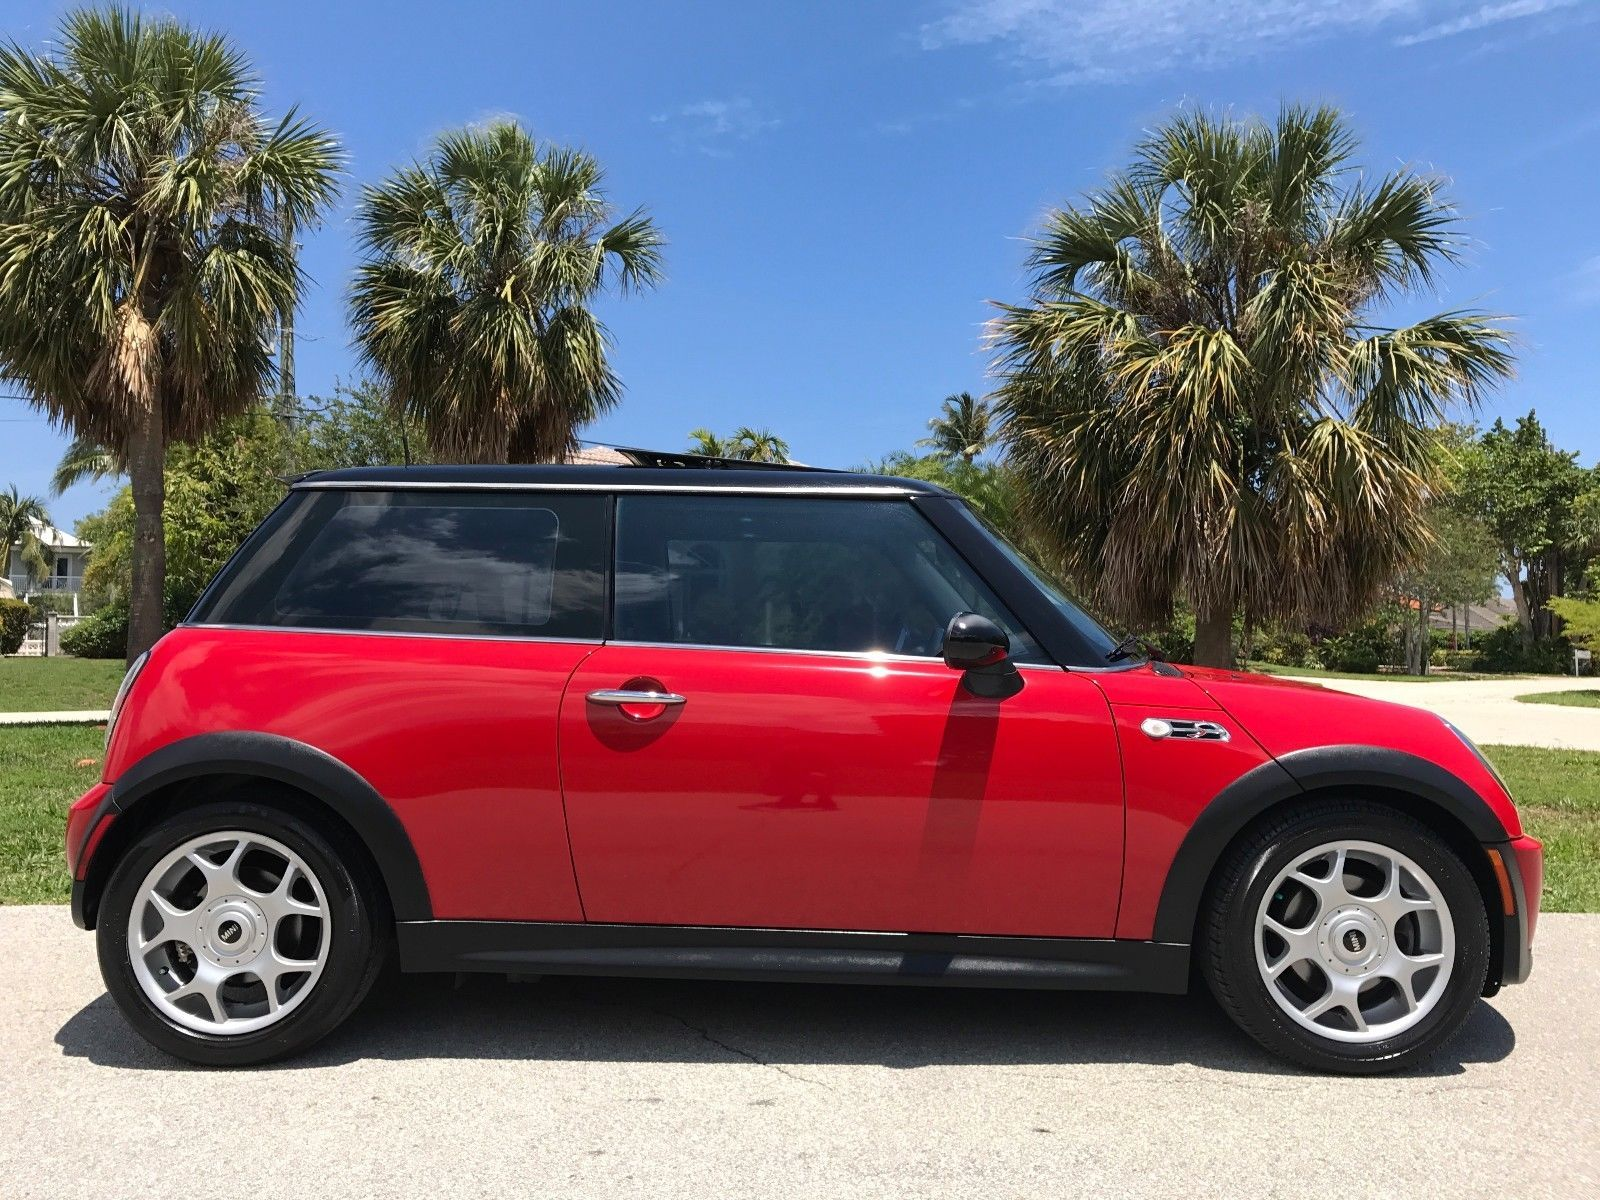 2004 mini cooper s supercharged one owner panoramic roof rh pinterest com 2004 mini cooper owners manual pdf 2004 mini cooper service manual pdf